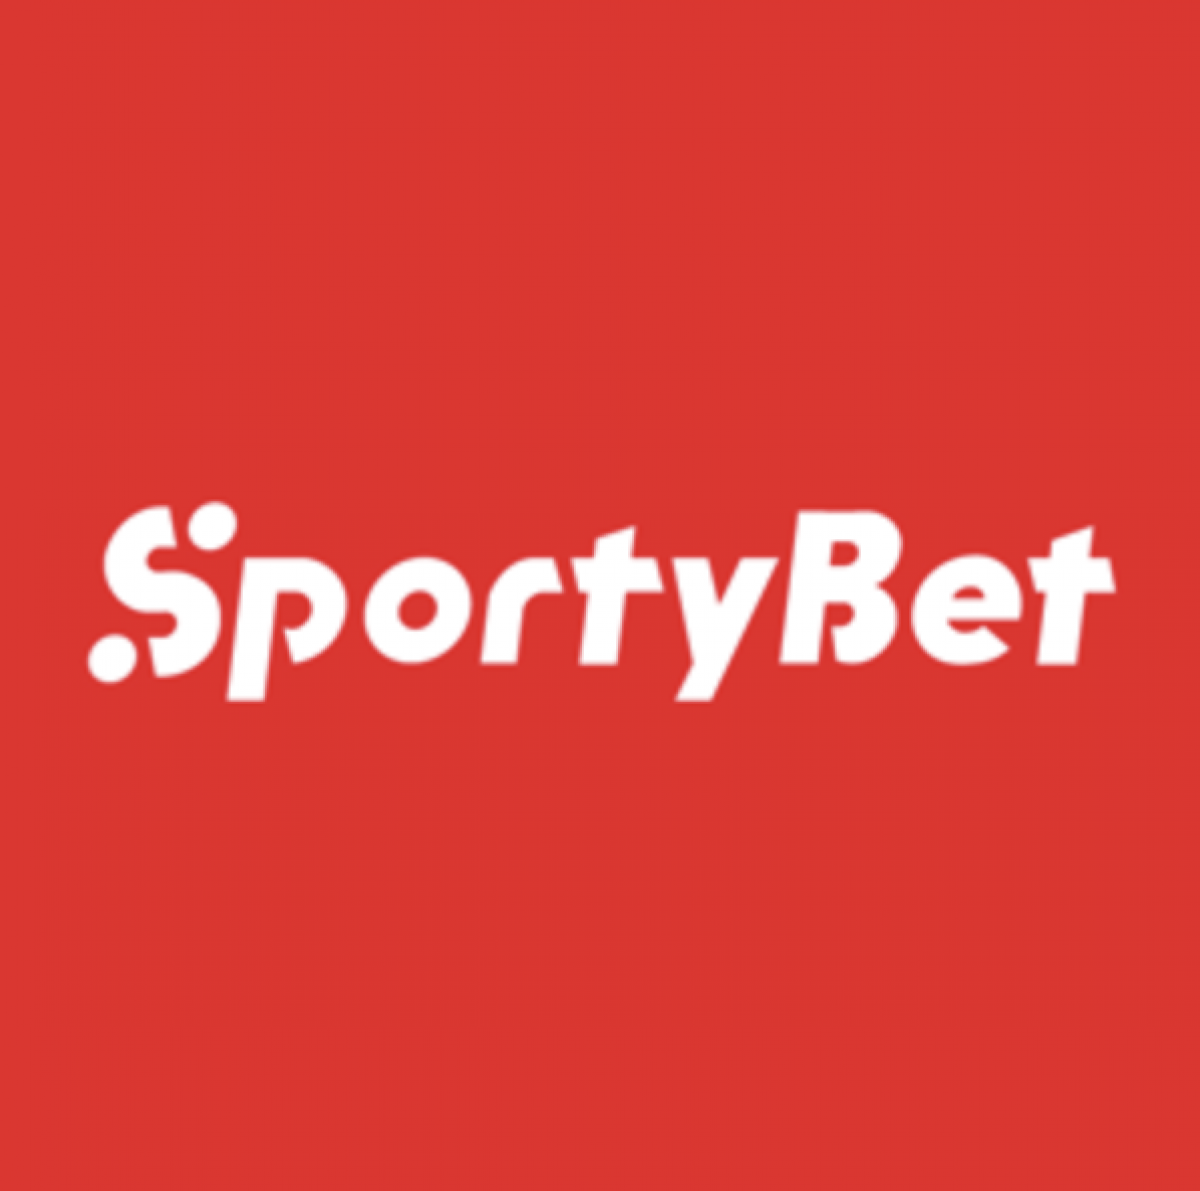 How To Stake Sportybet Online With The Mobile App